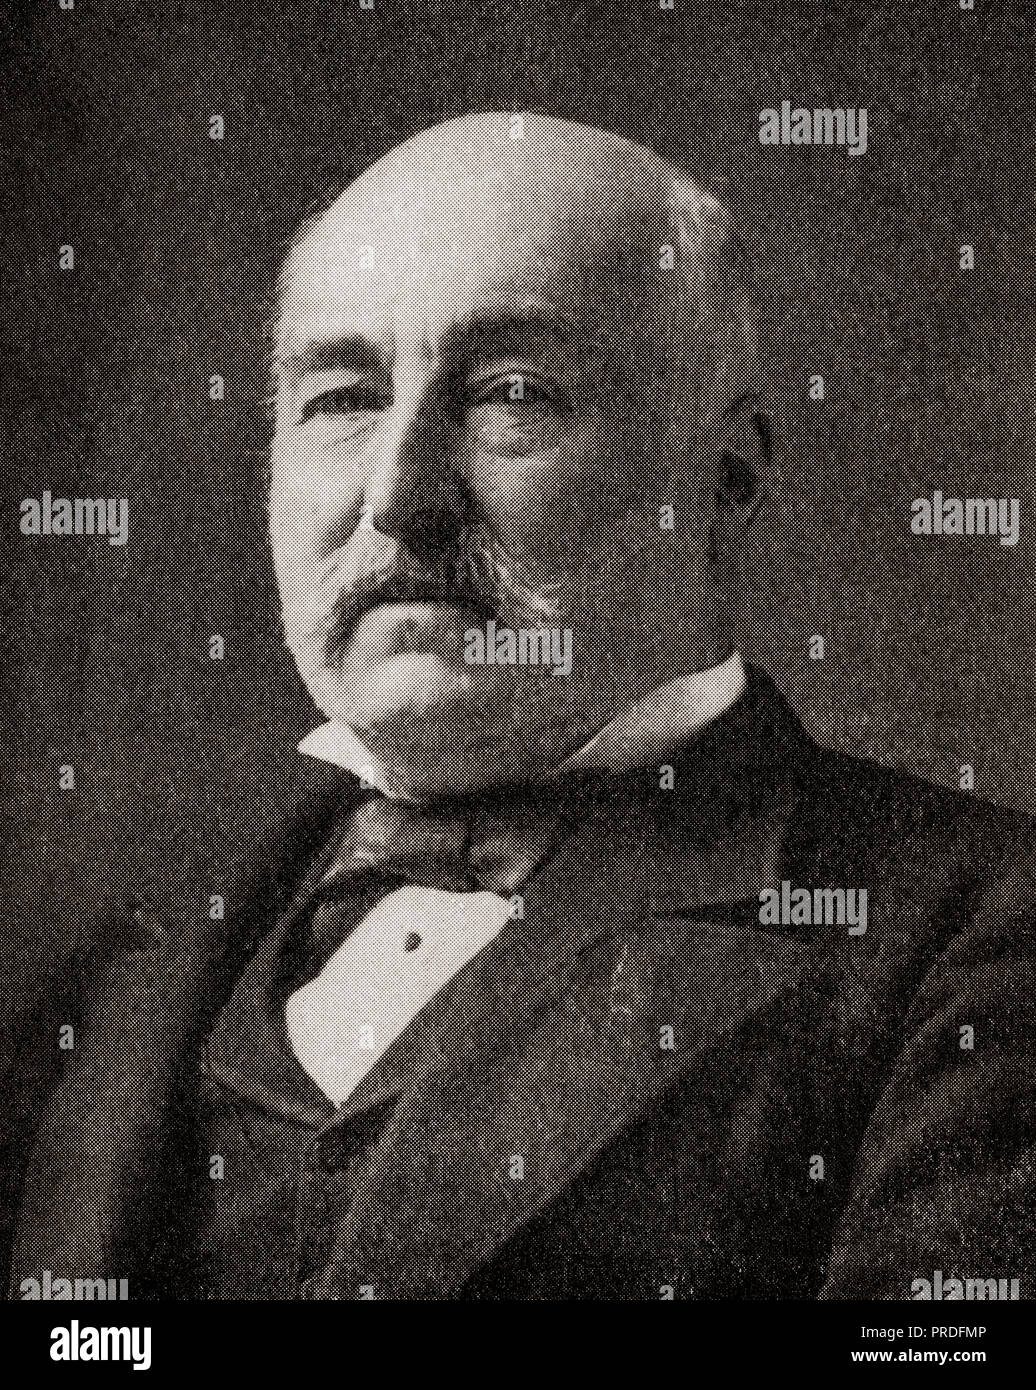 Sir Charles Mark Palmer, 1st Baronet, 1822 –1907.  English shipbuilder, Liberal Party politician and Member of Parliament.  From The Business Encyclopedia and Legal Adviser, published 1920. - Stock Image